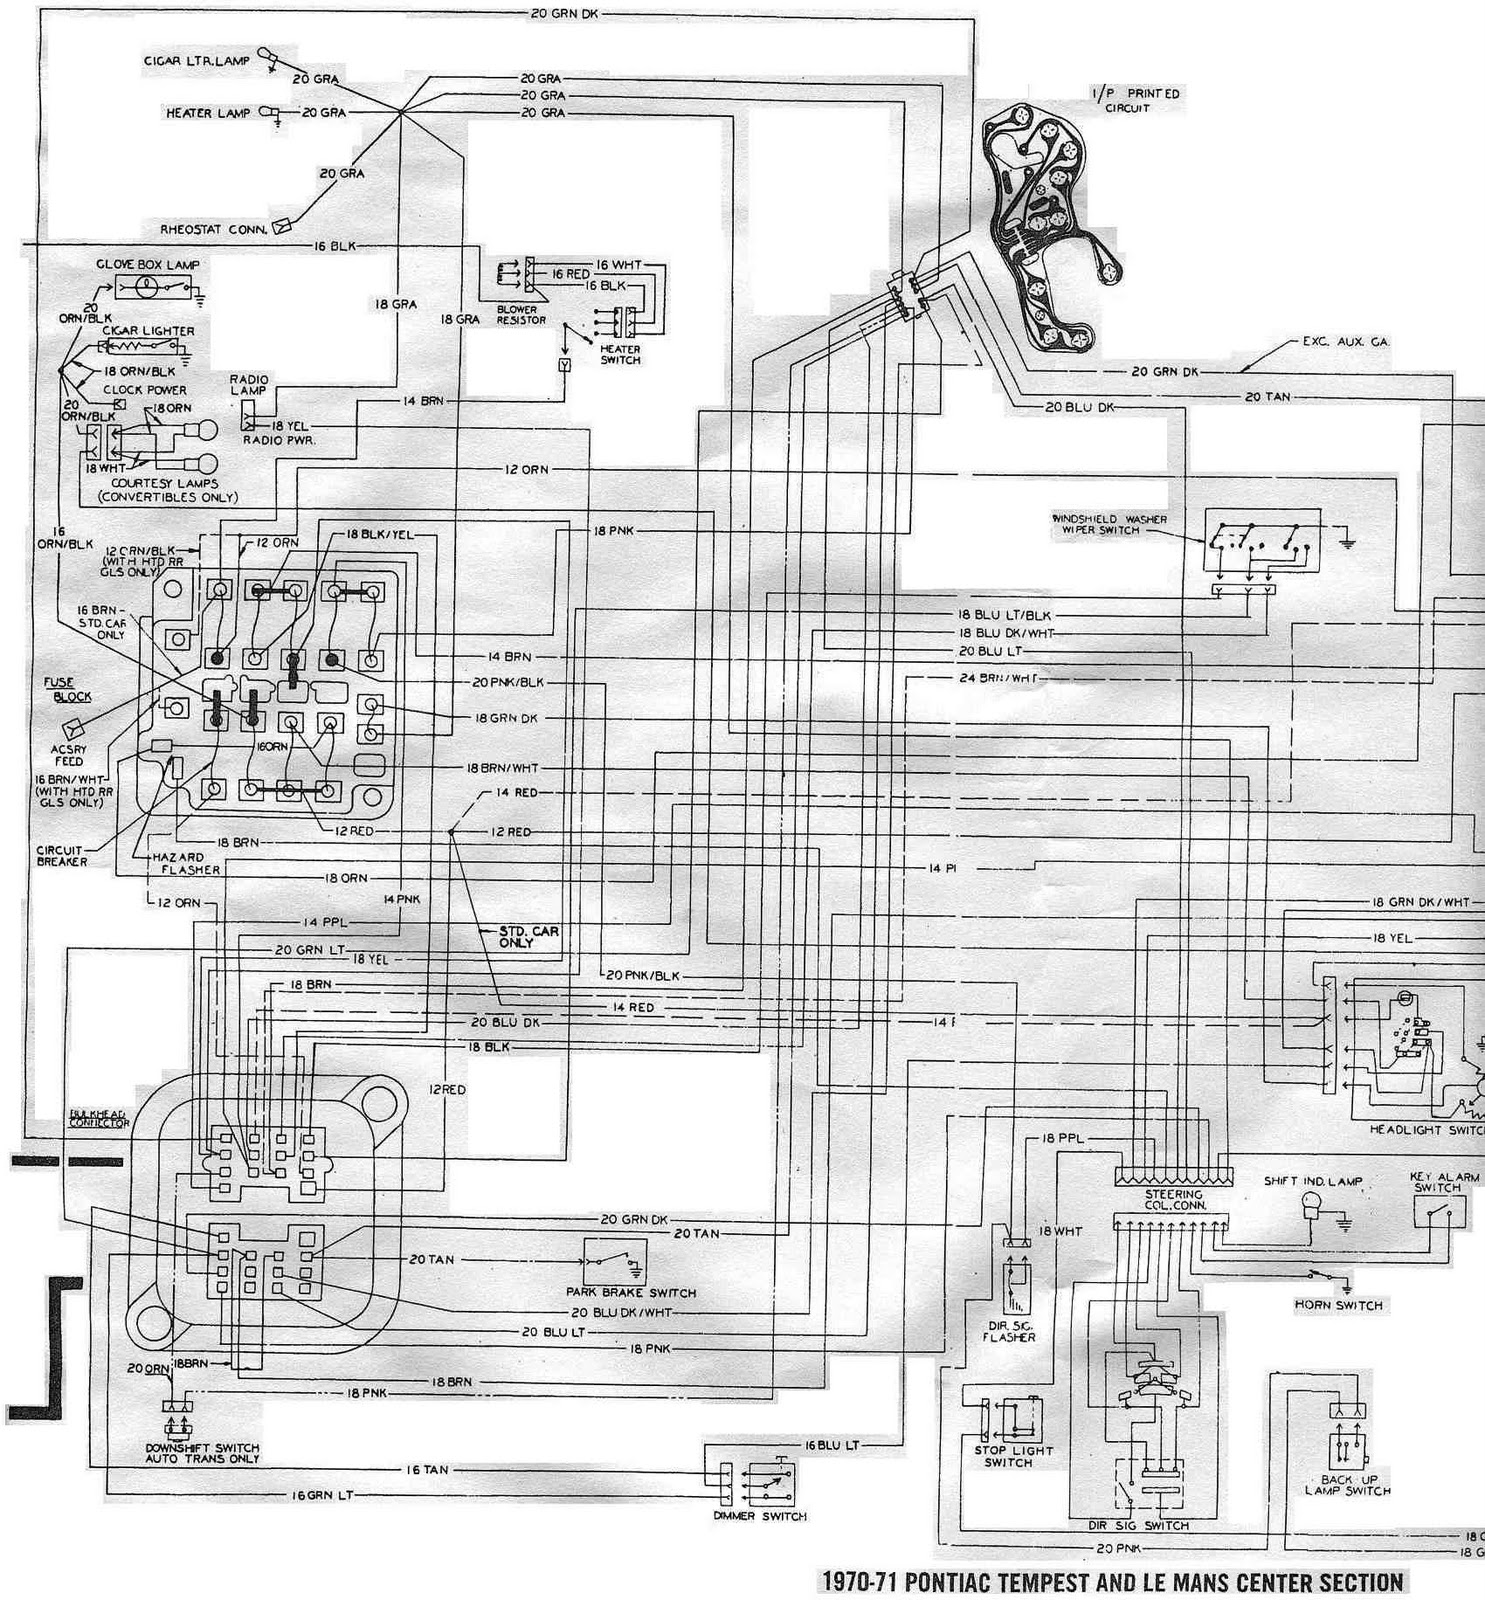 70 gto rally gauge alternator wiring diagram wiring library 1968 tempest & gto wiring diagram